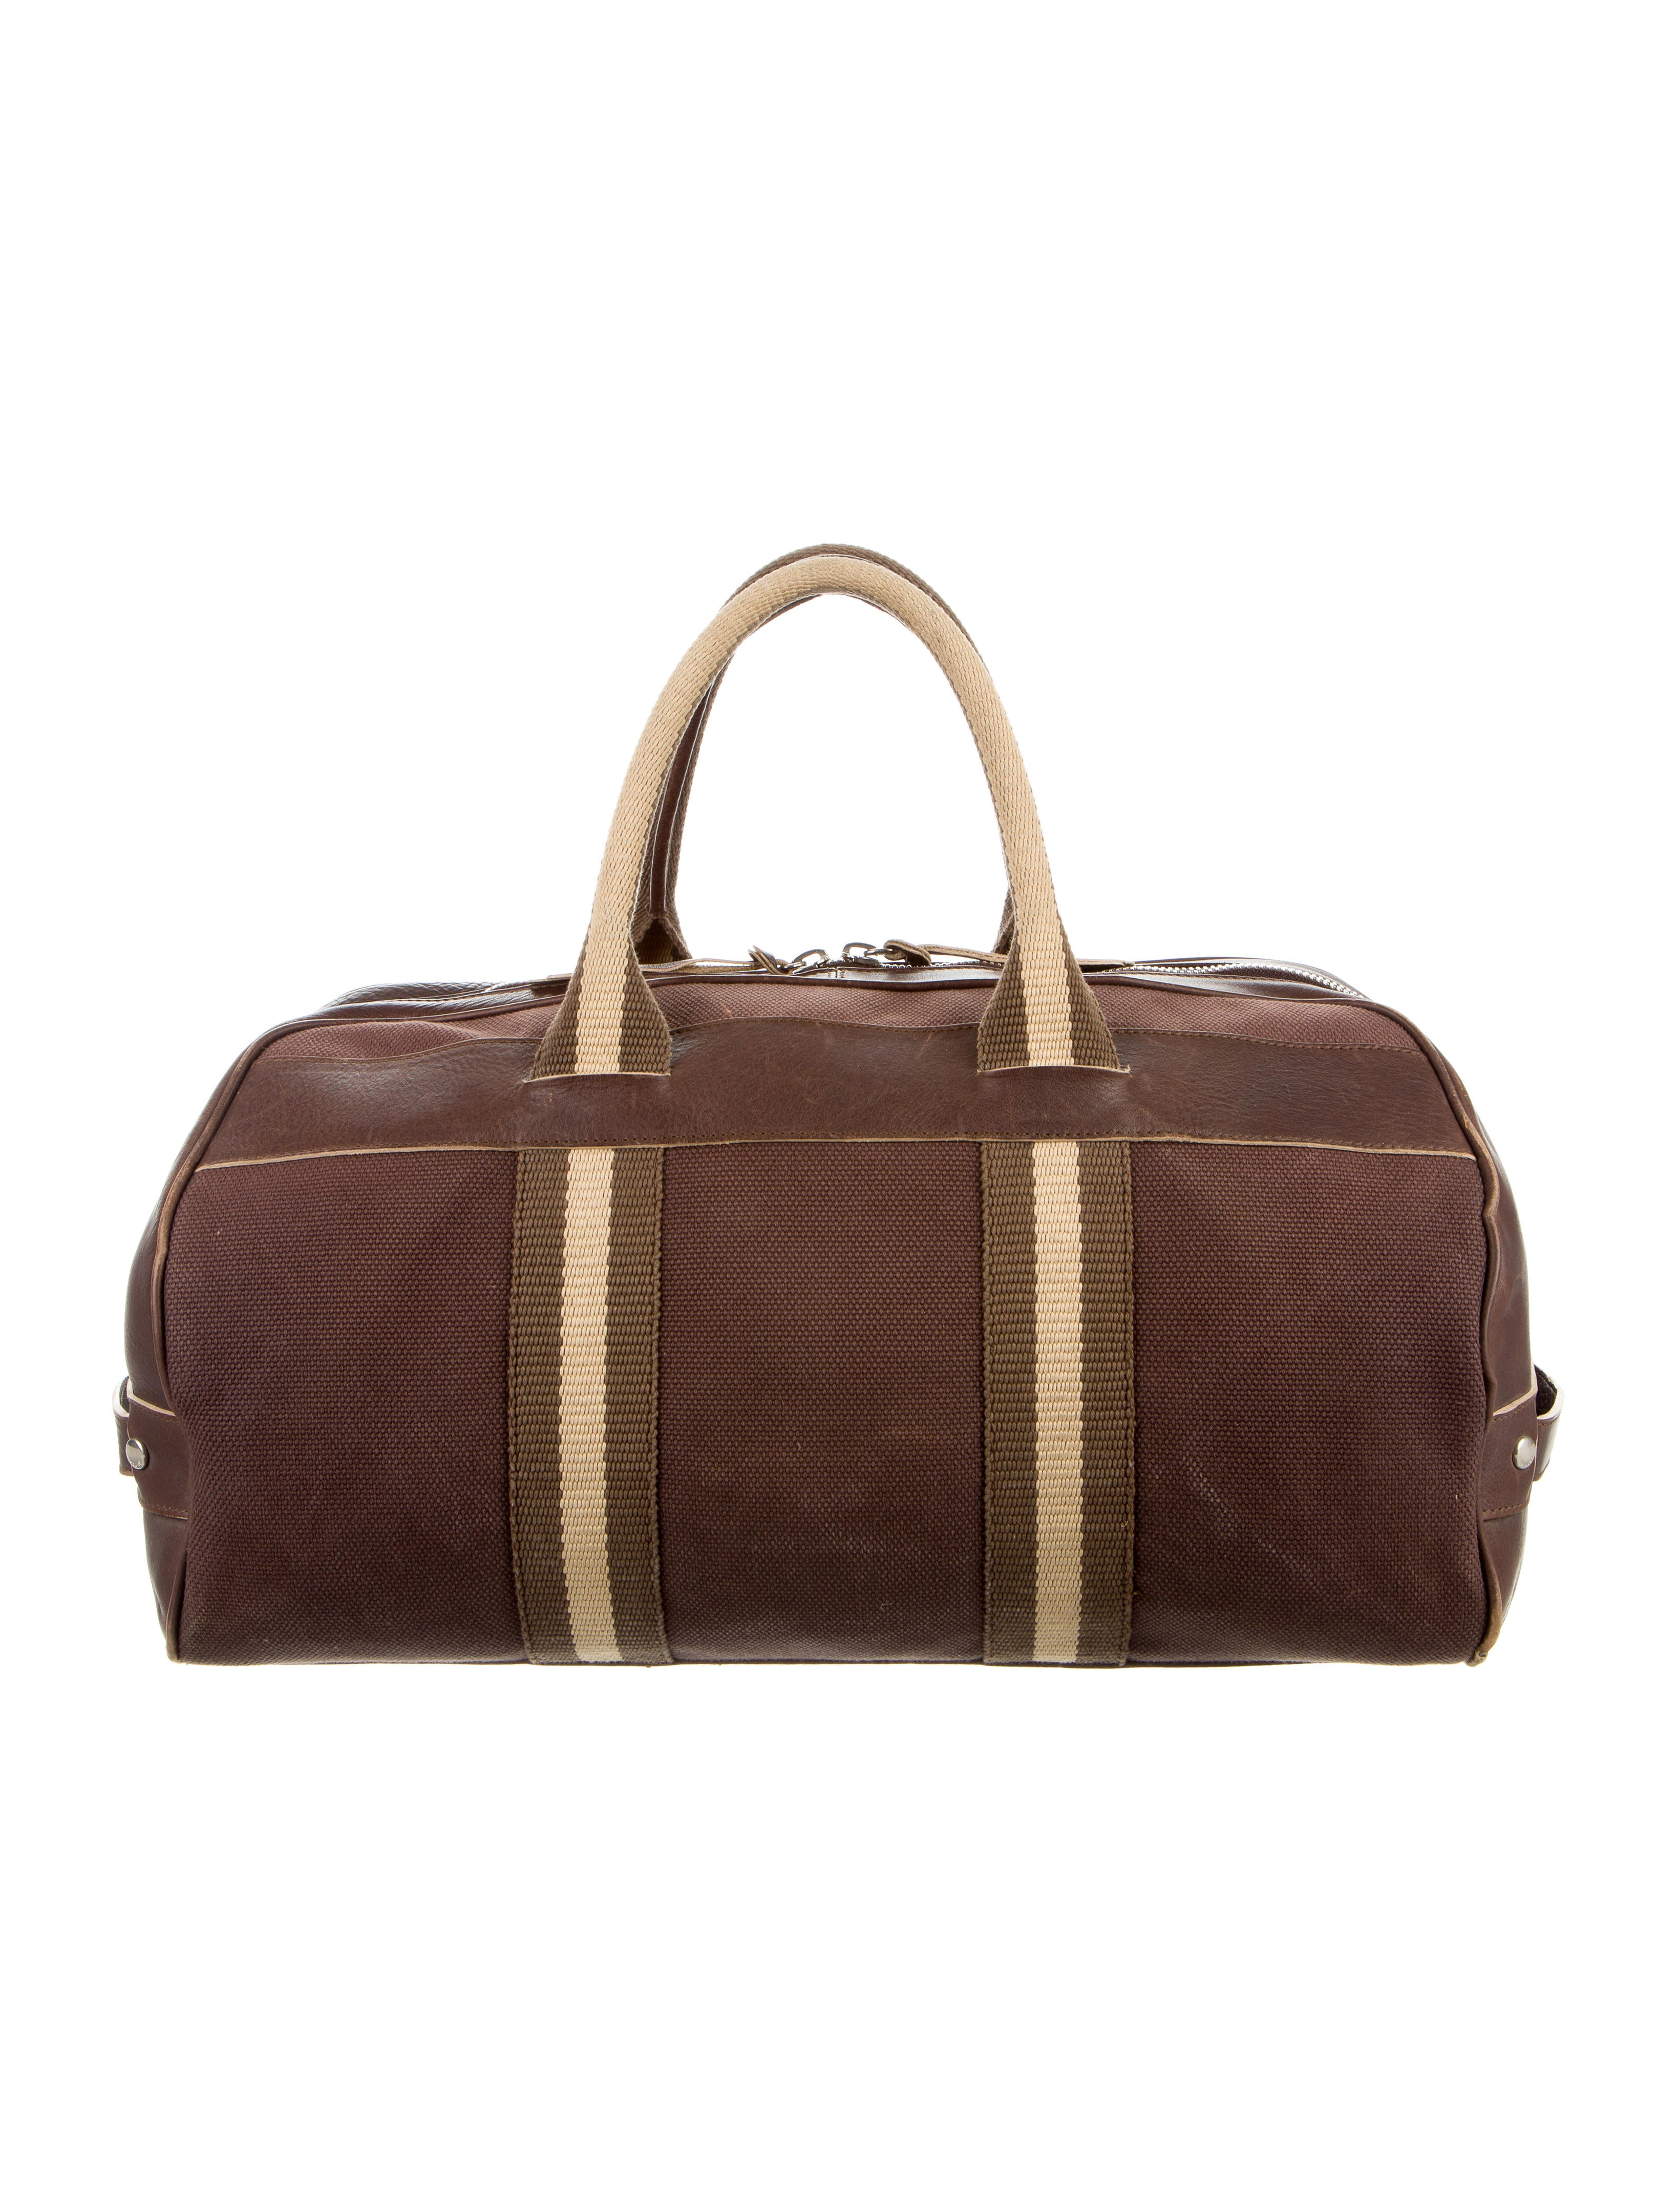 Canvas Duffle Bags With Leather Trim  e3b38fd61b5ca